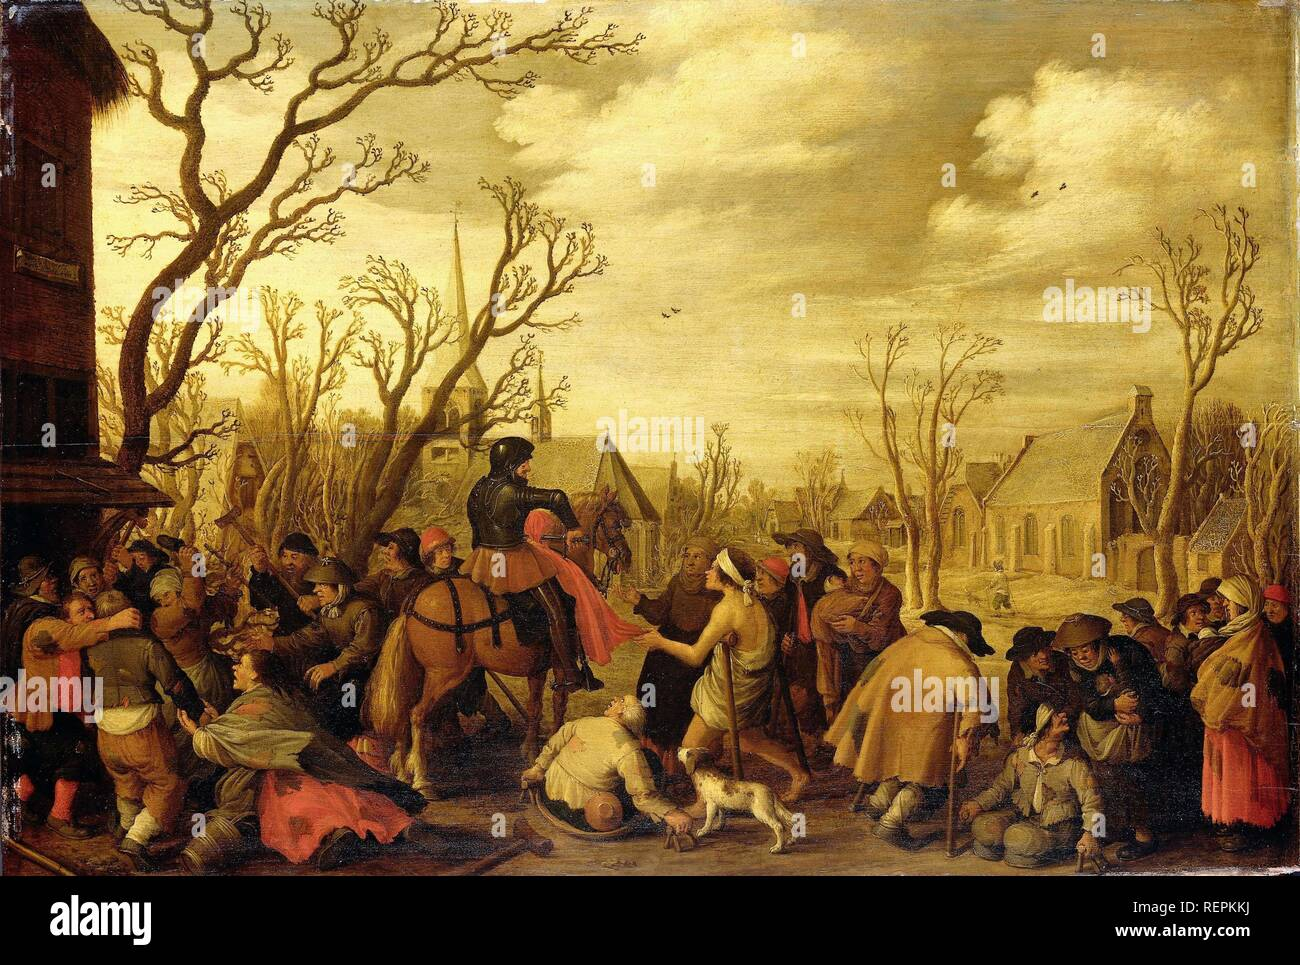 St Martin Cutting Off Part of his Cloak for a Beggar. Dating: 1623. Measurements: support: h 58.4 cm × w 85.5 cm. Museum: Rijksmuseum, Amsterdam. Author: Joost Cornelisz. Droochsloot. Stock Photo